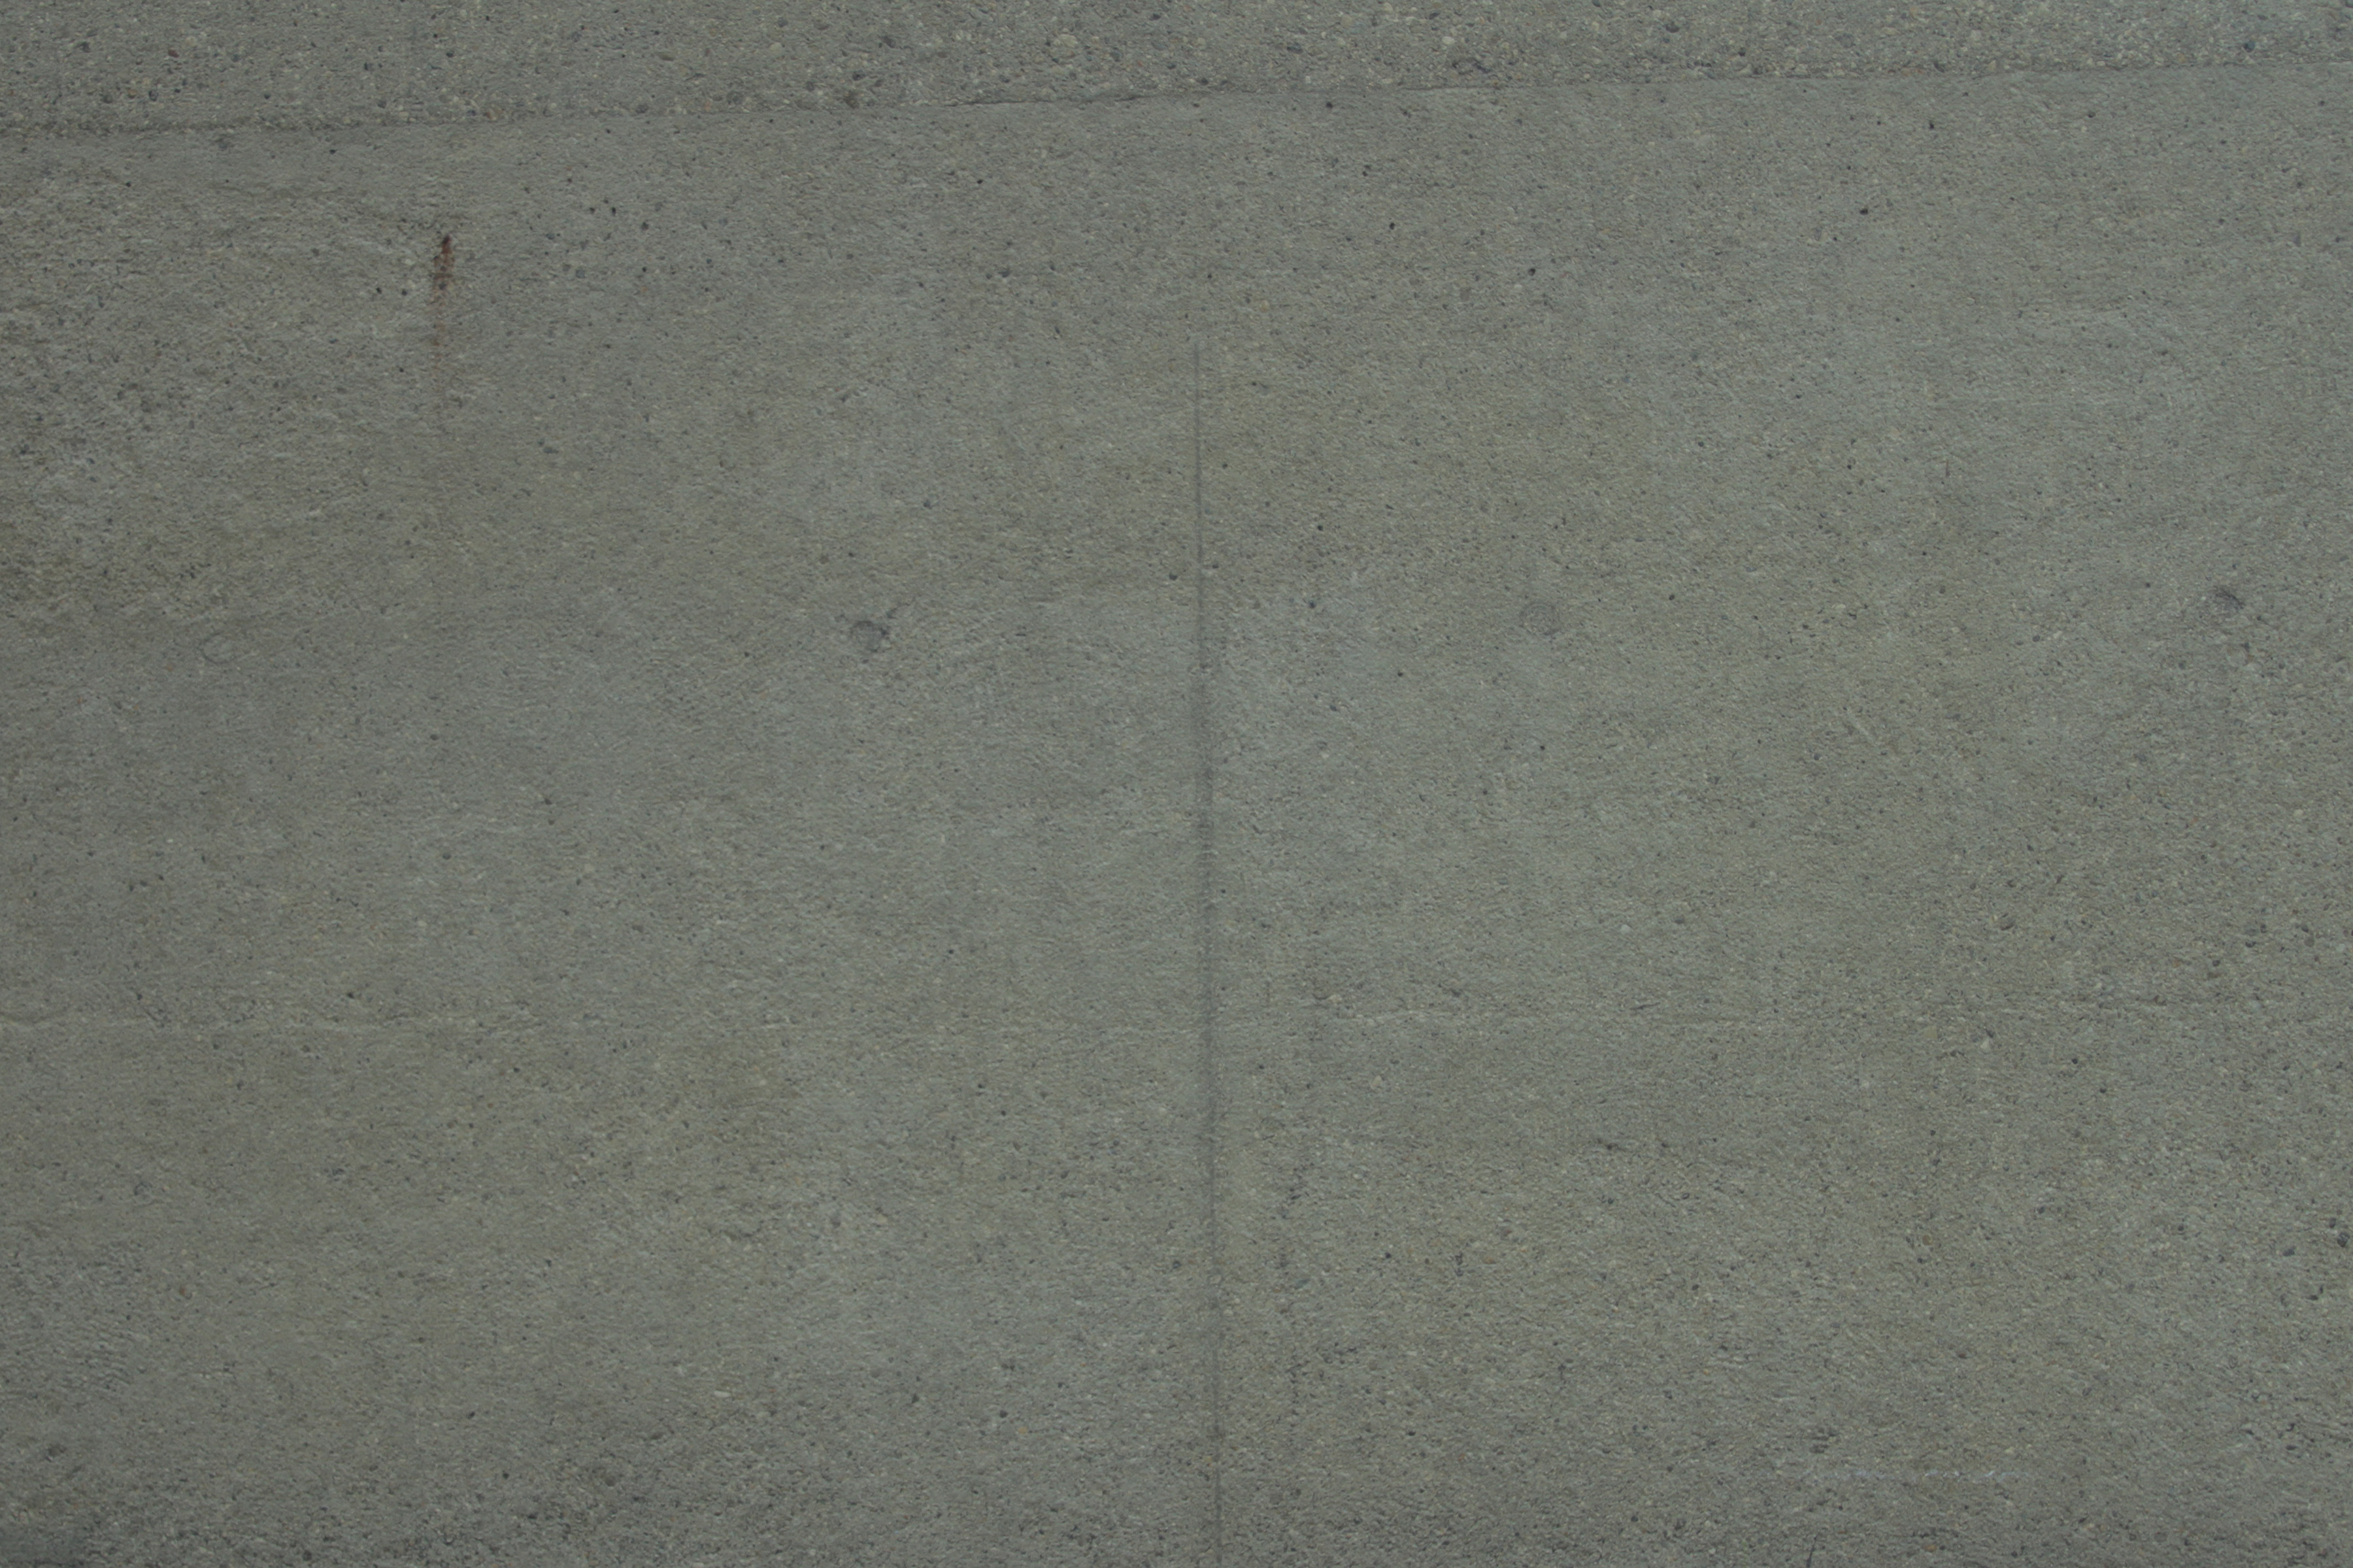 Concrete Wall Texture - 14Textures